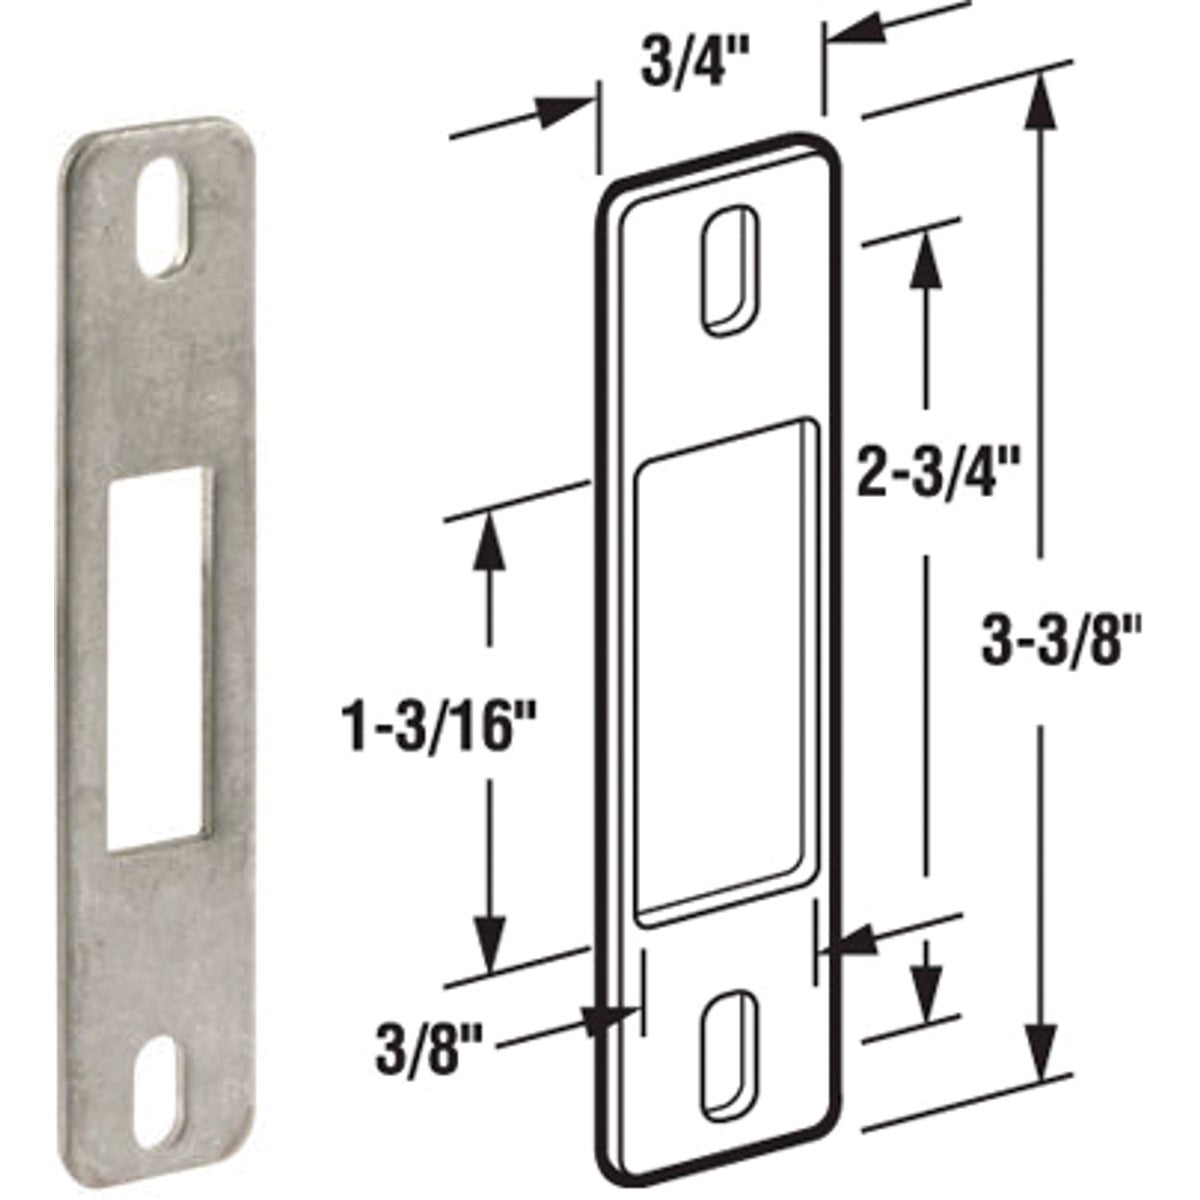 SLIDNG PATIO DOOR KEEPER - 15400-19 by Prime Line Products